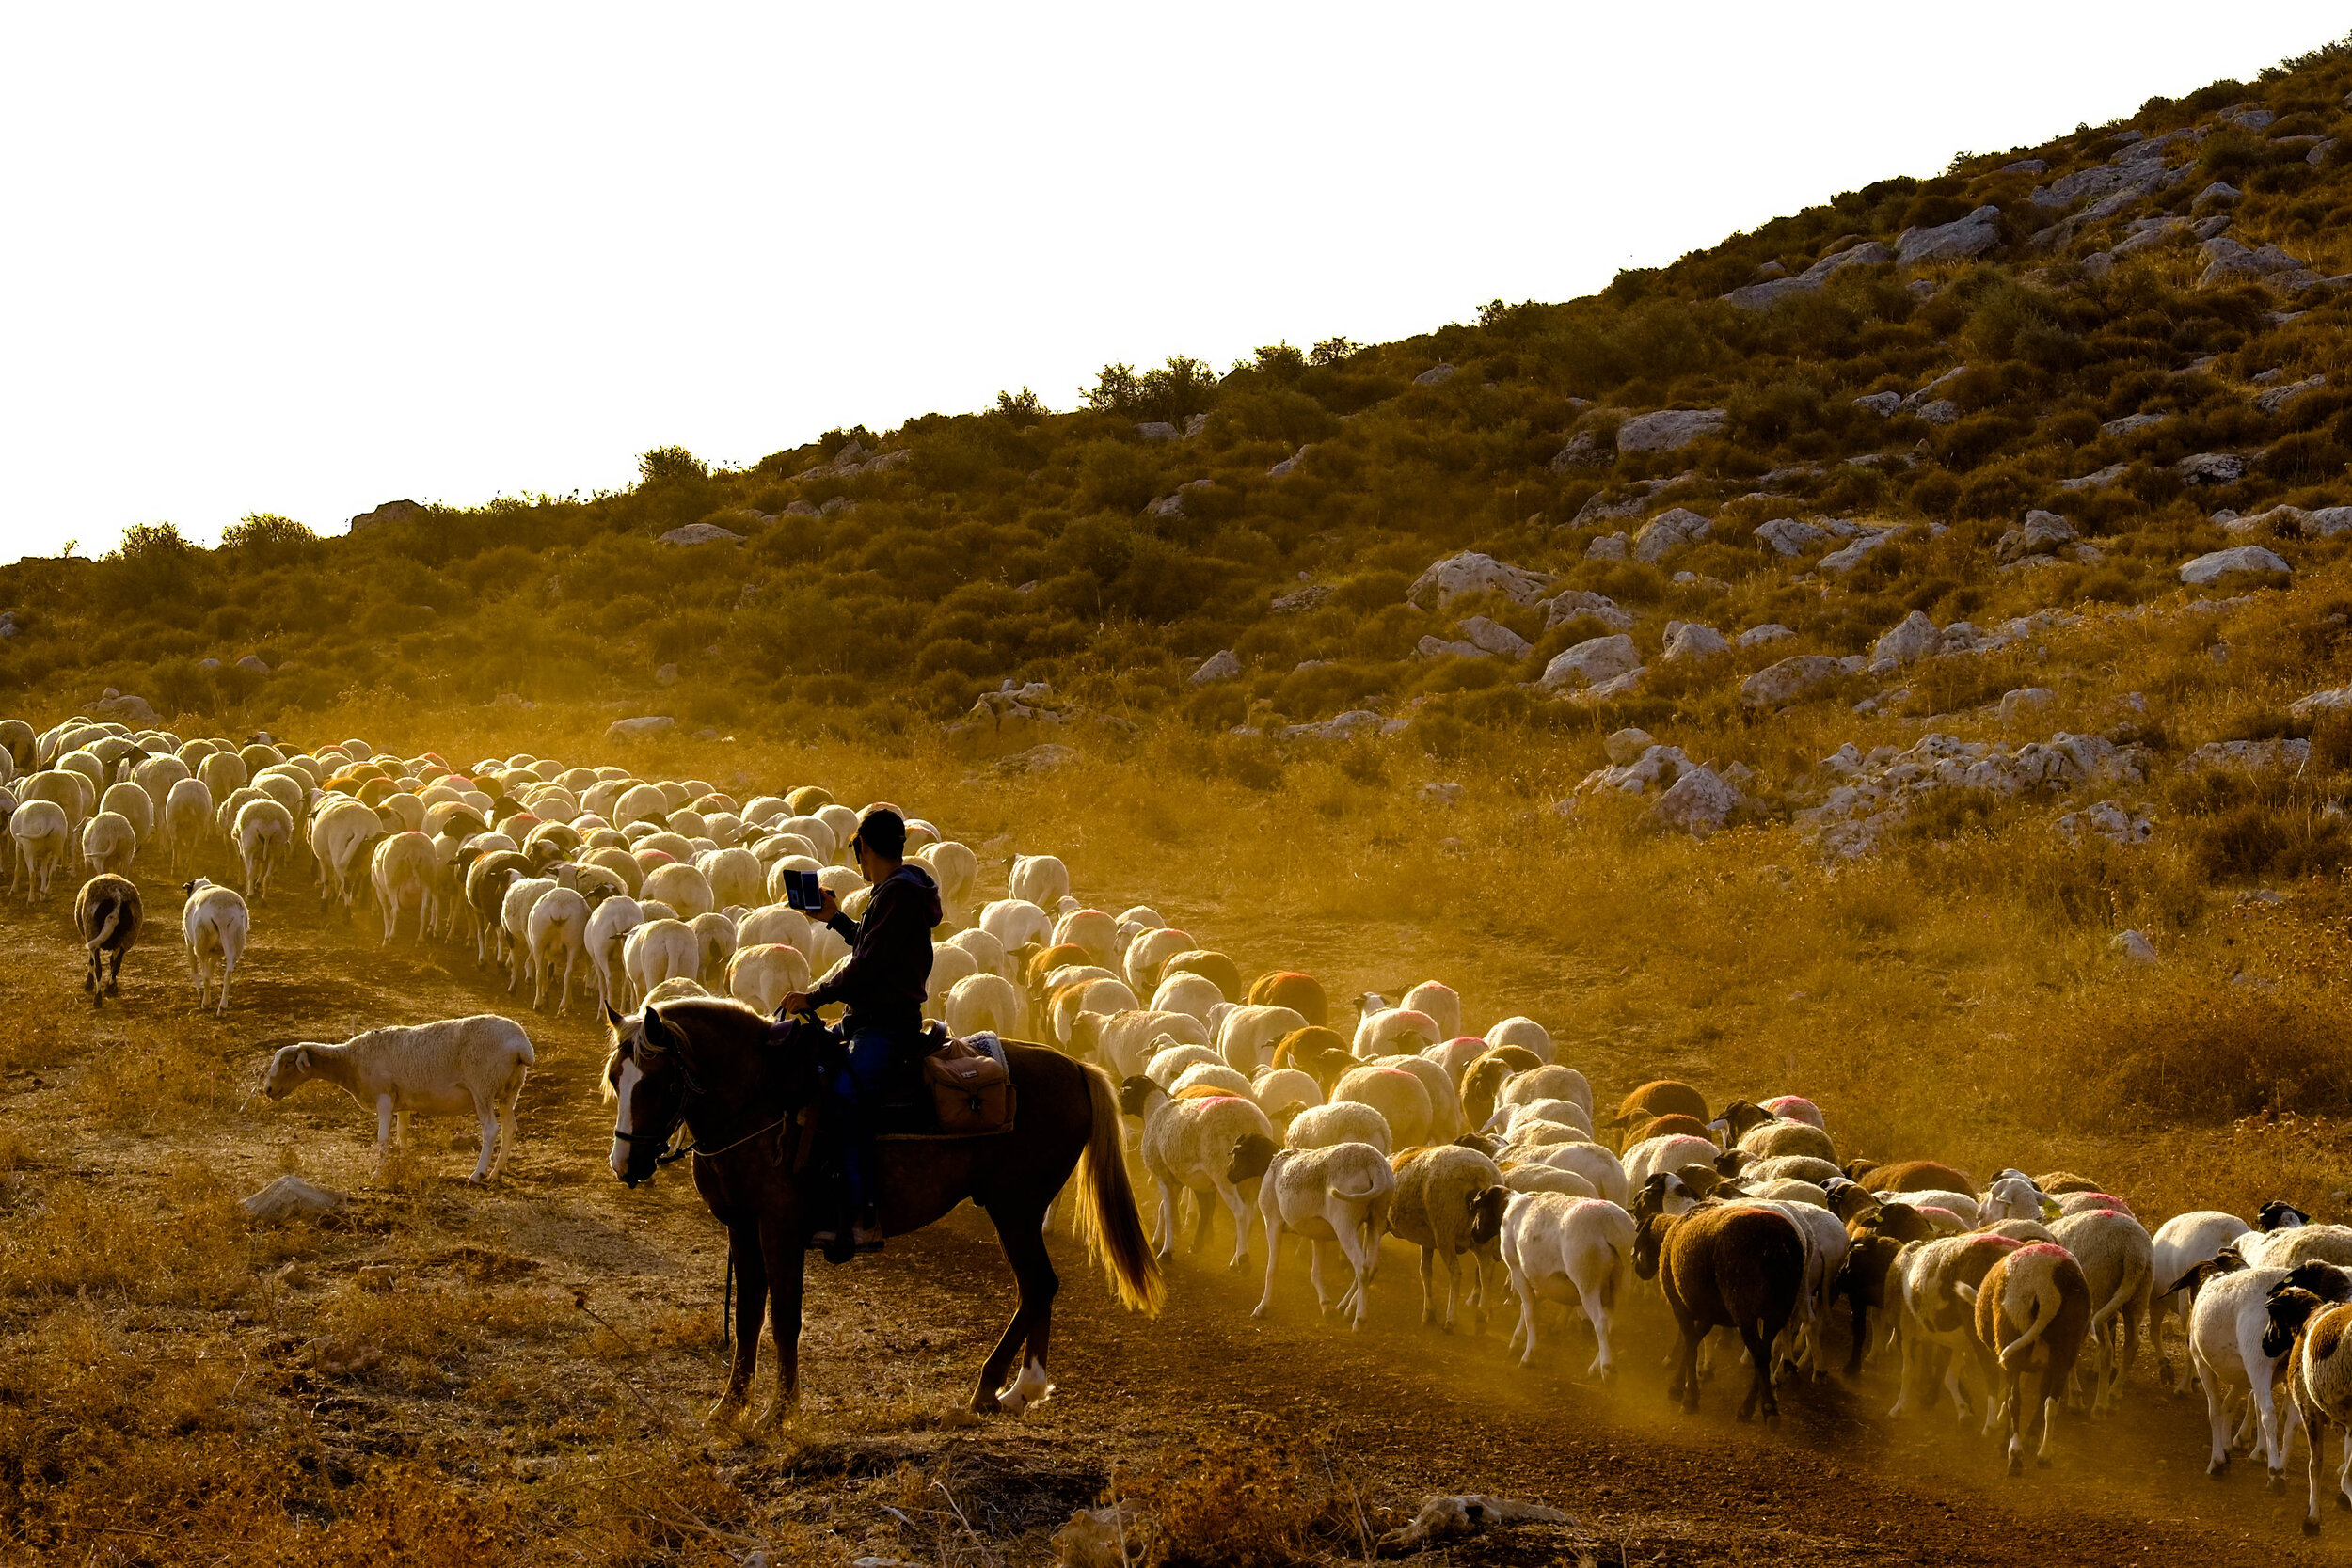 """settler youth from the illegal outpost """"Angels of Peach"""" (sic) with his white sheep. Keeping herds of sheep enable the settlers to occupy more and more land and drive away the Palestinians"""